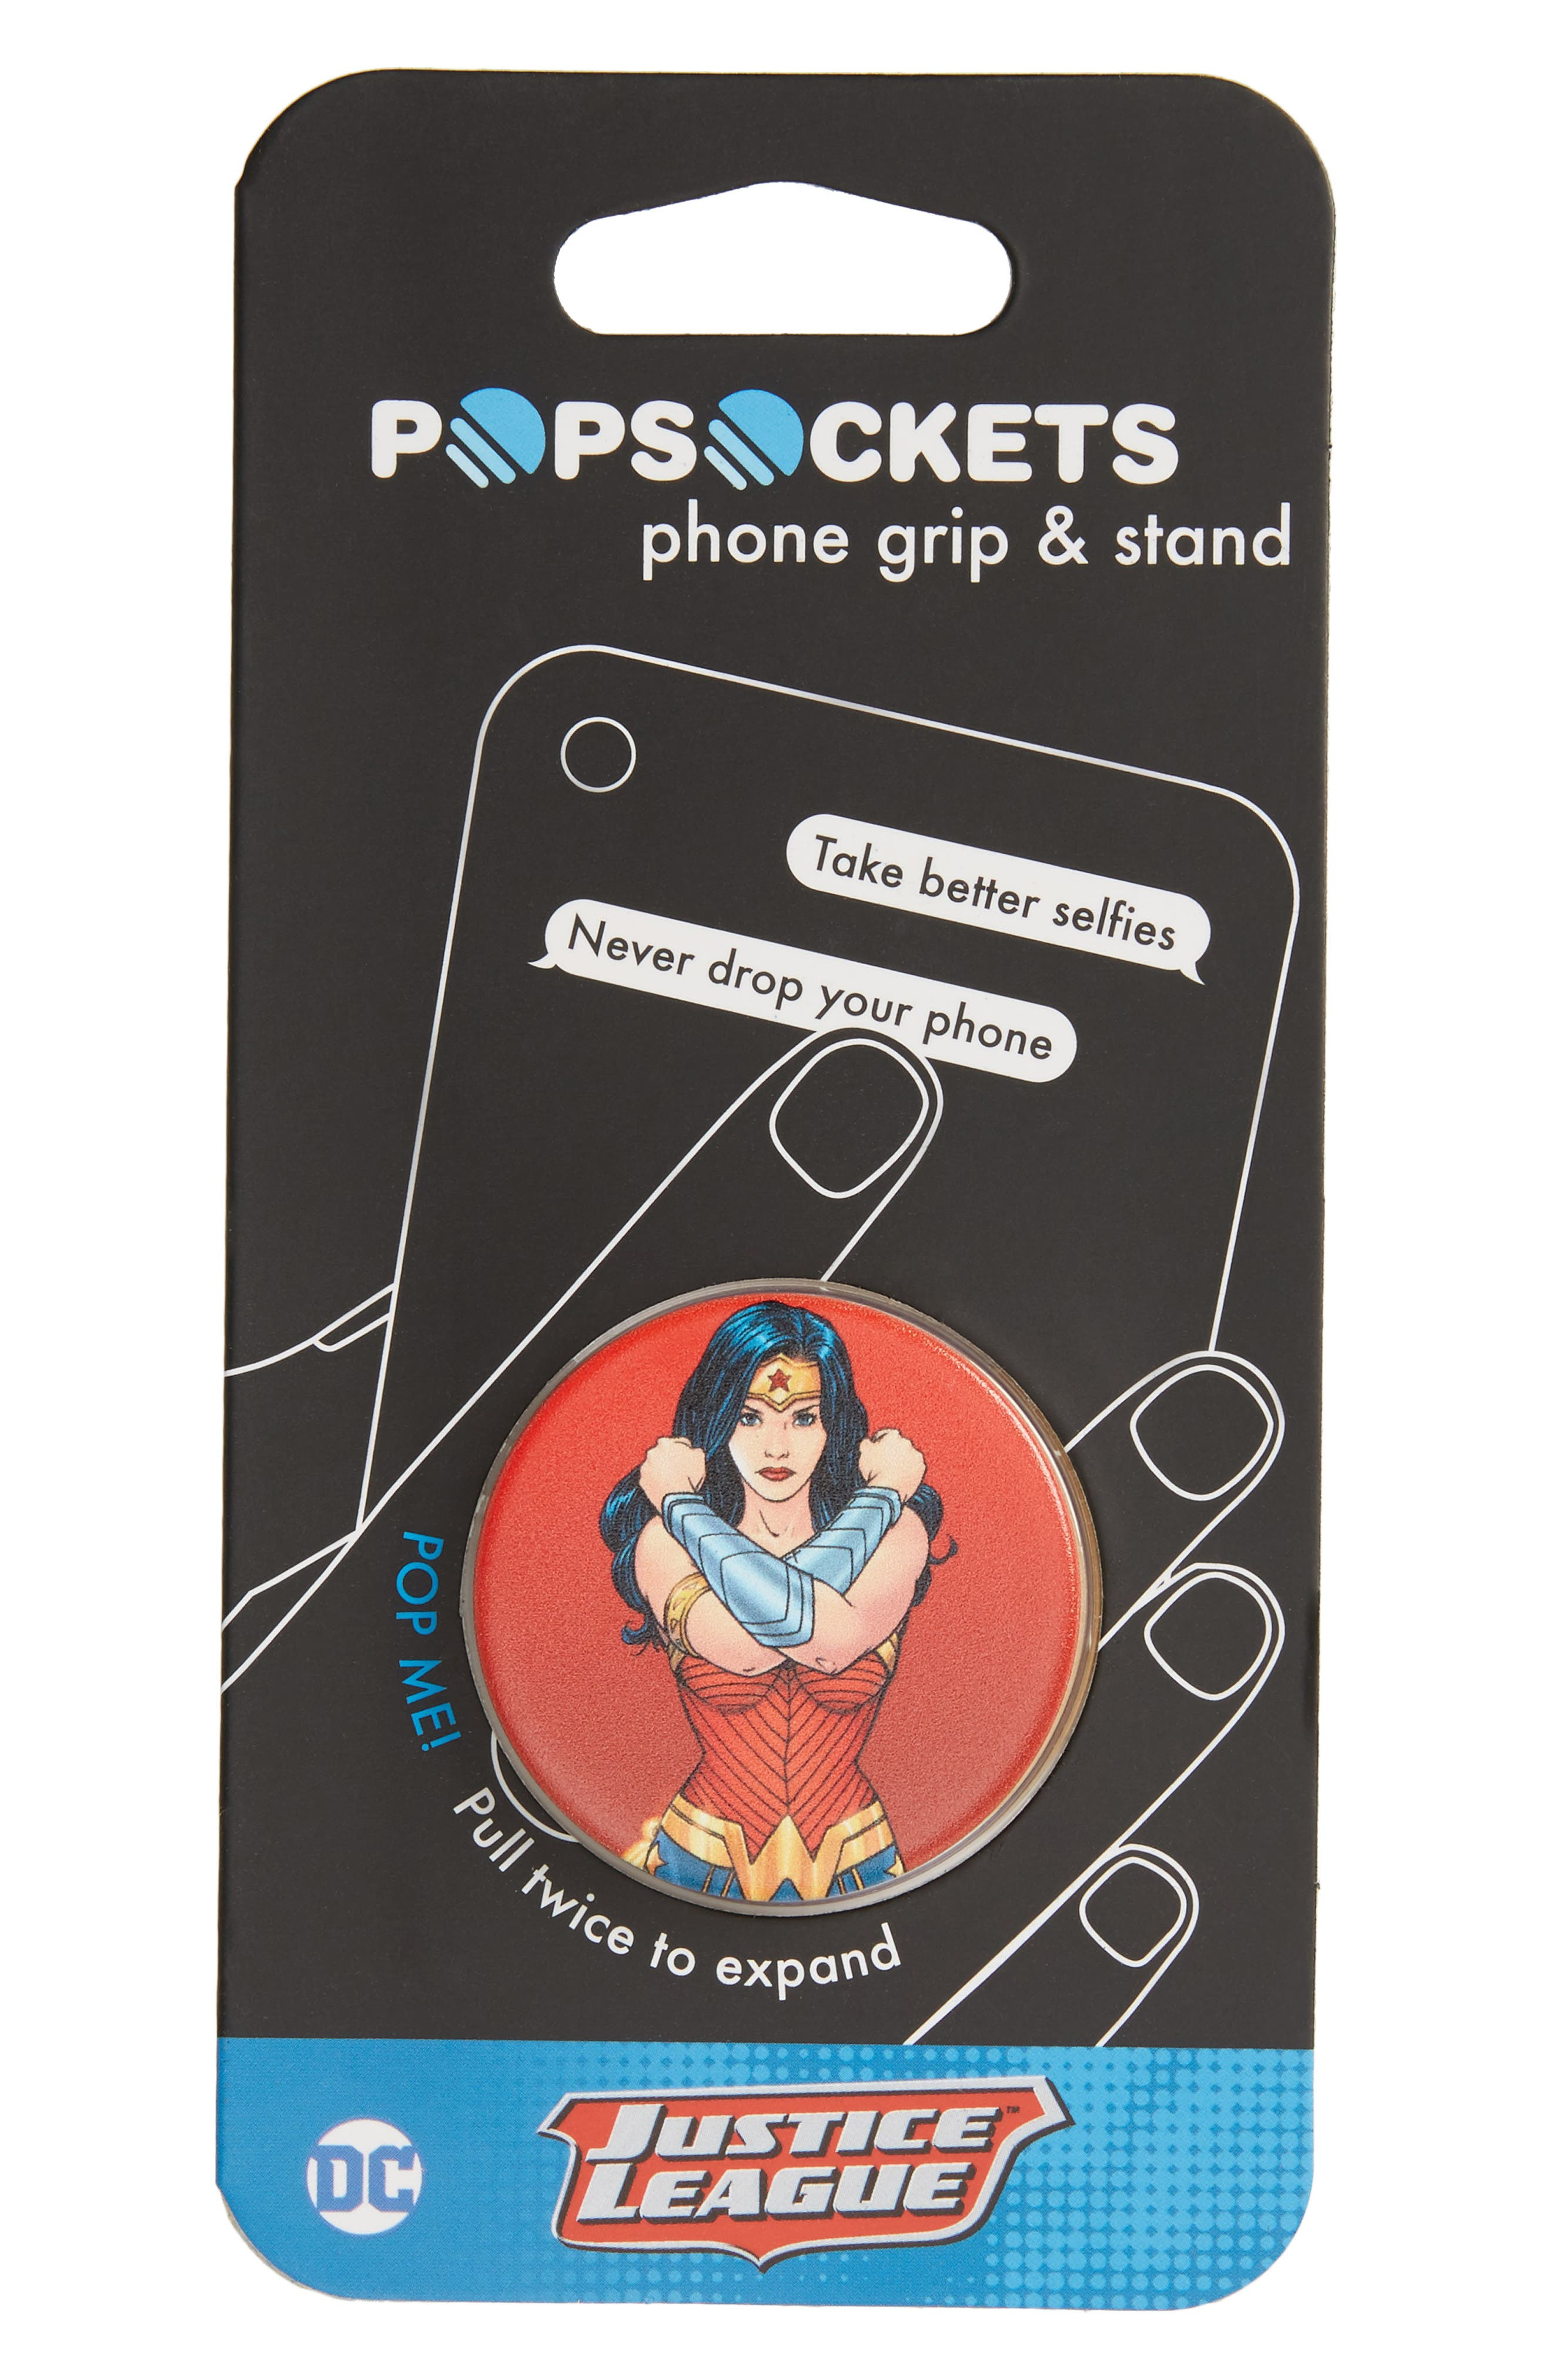 DC Wonder Woman Cell Phone Grip & Stand,                             Main thumbnail 1, color,                             Dc Wonder Woman